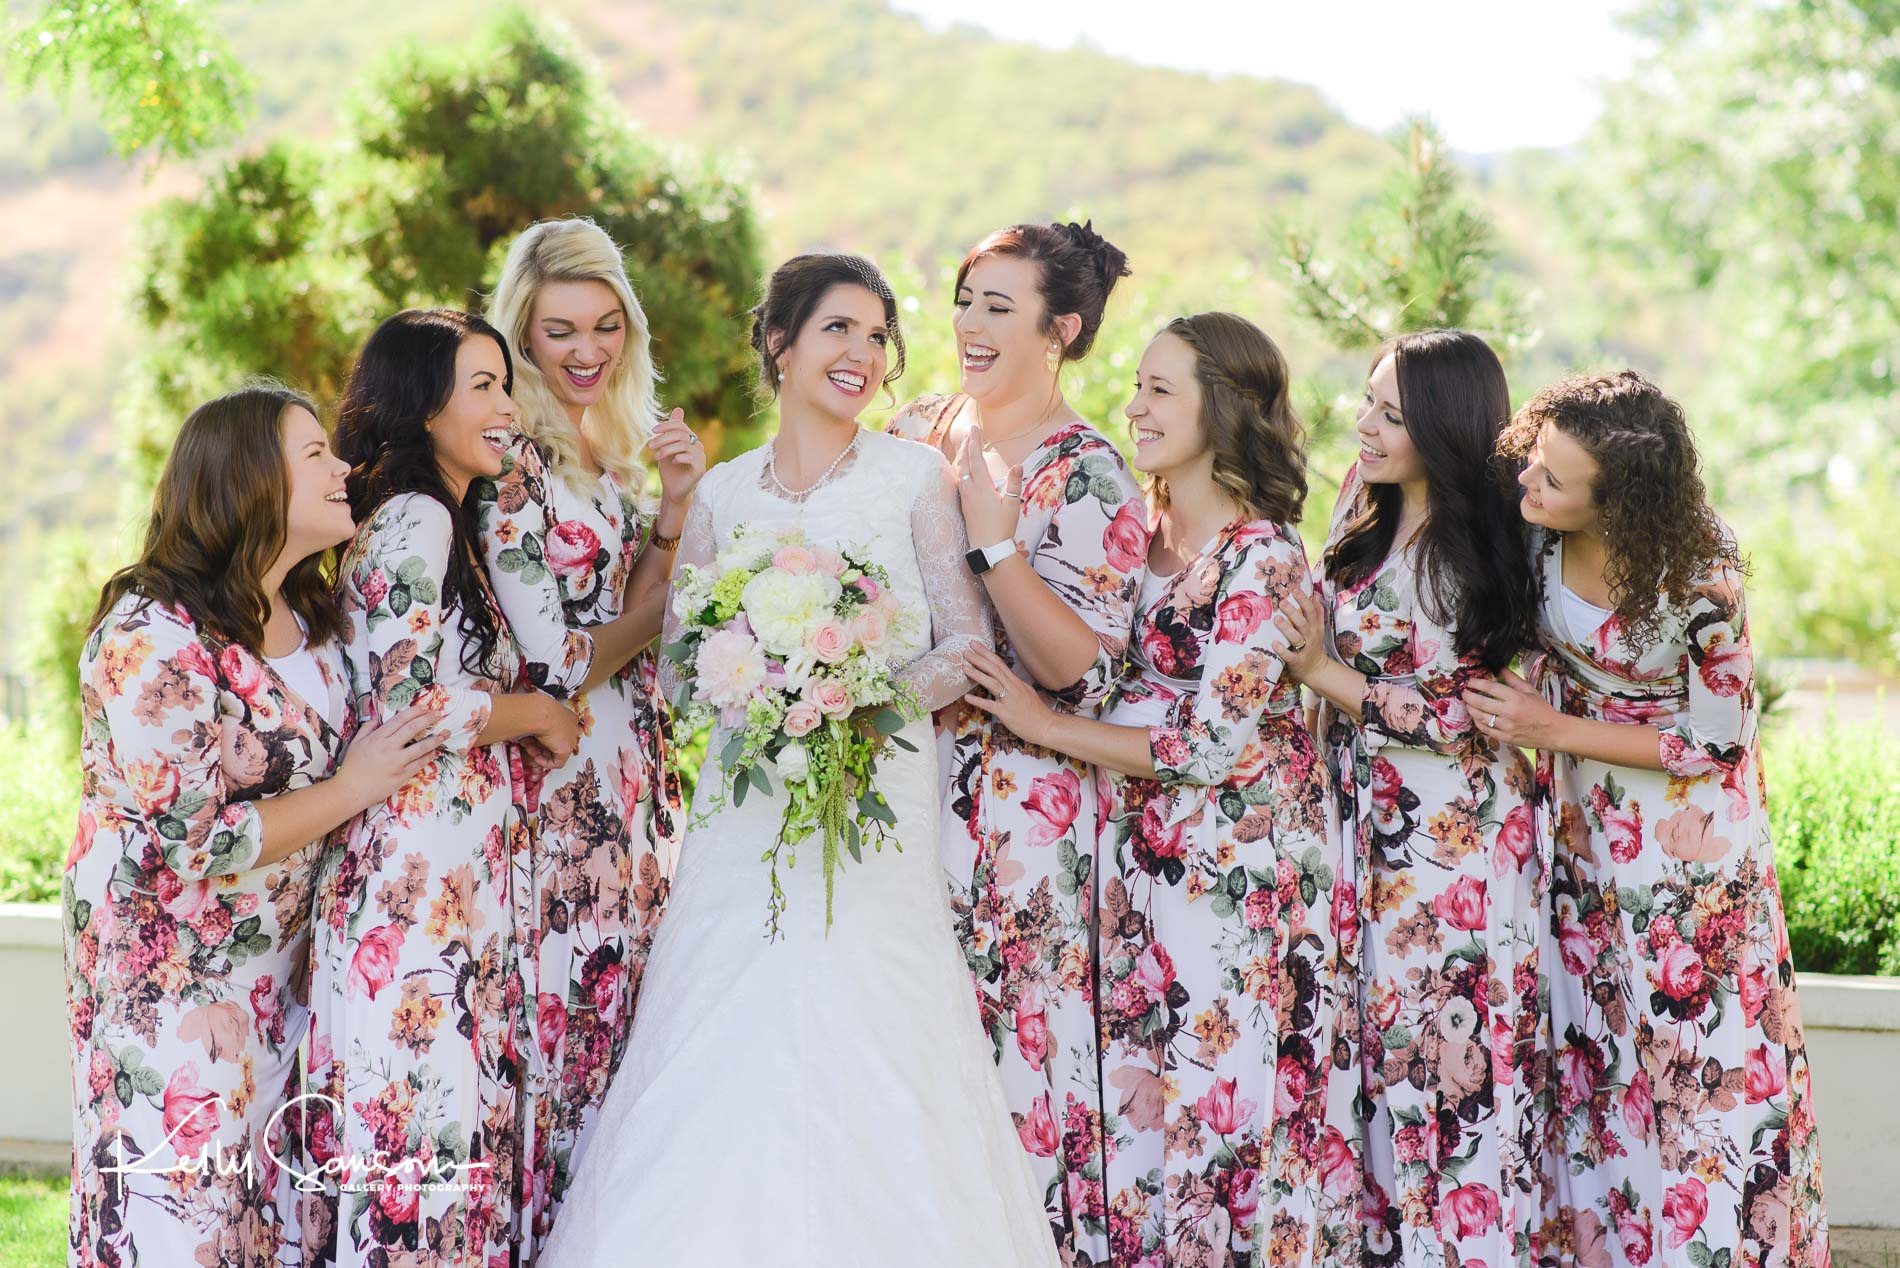 Bridesmaids laugh with a bride for wedding photography at the Bountiful LDS temple.